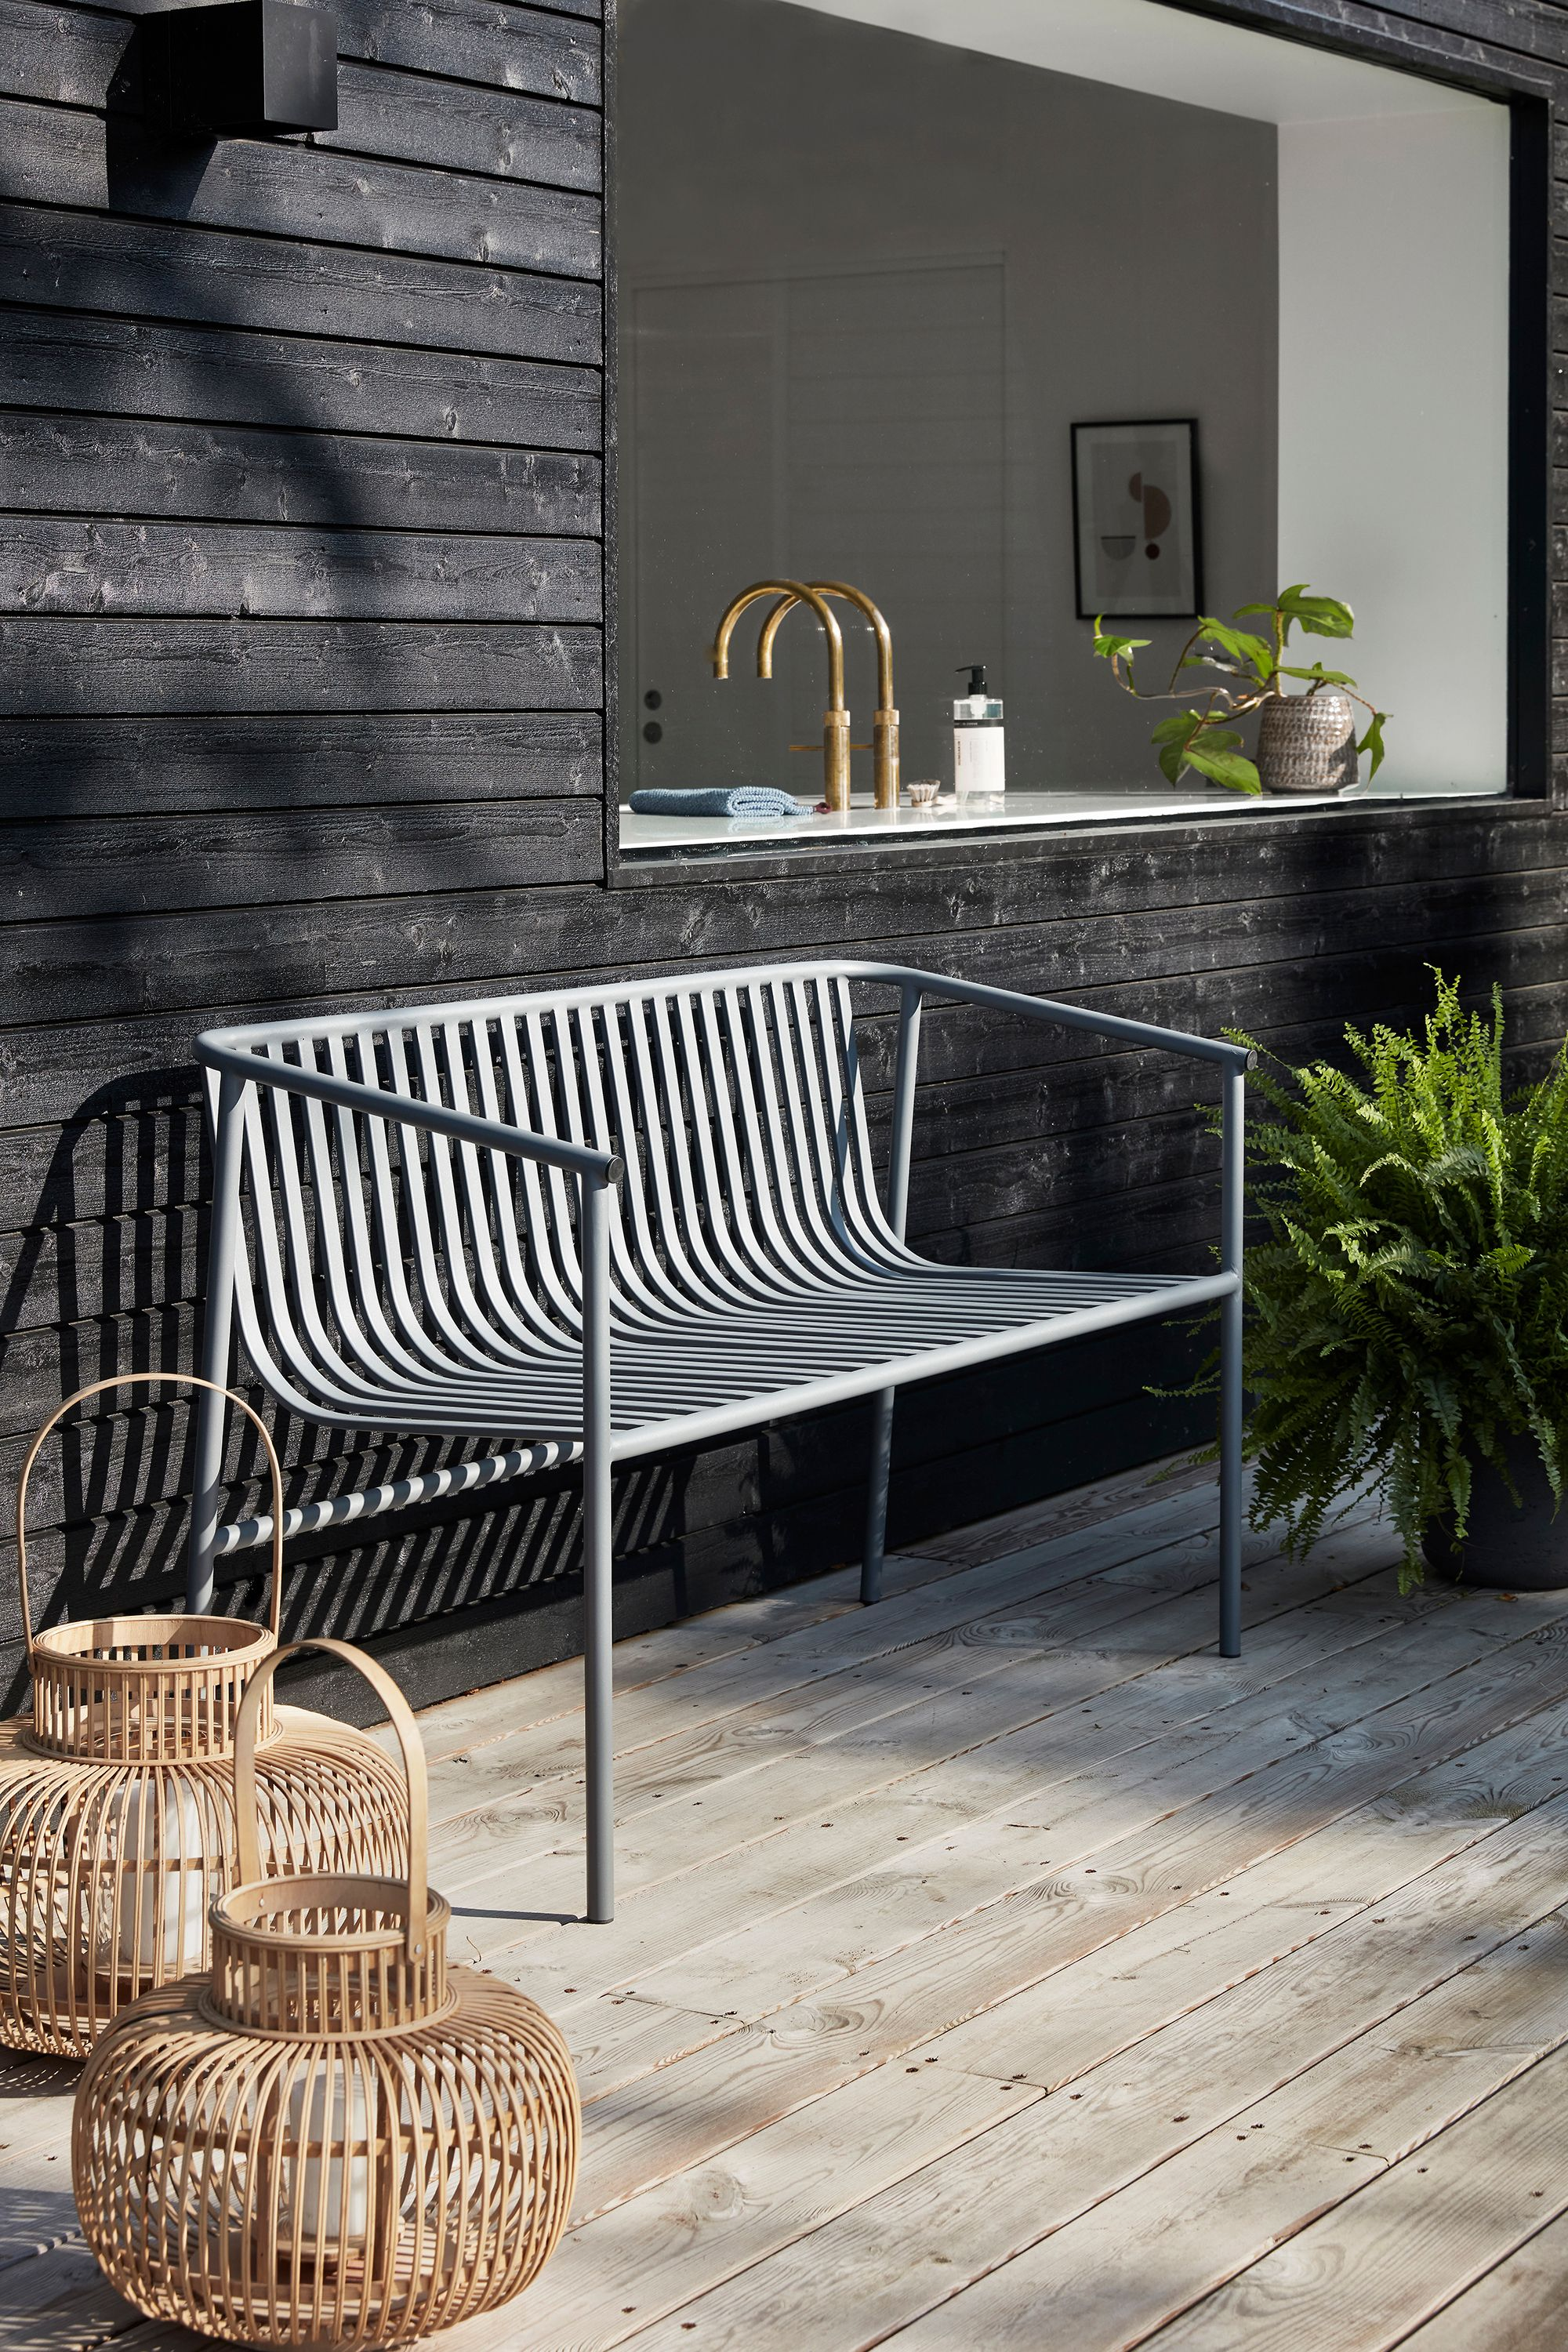 Imagine Sitting Out Here In The Sun On This Modern Bench With Some